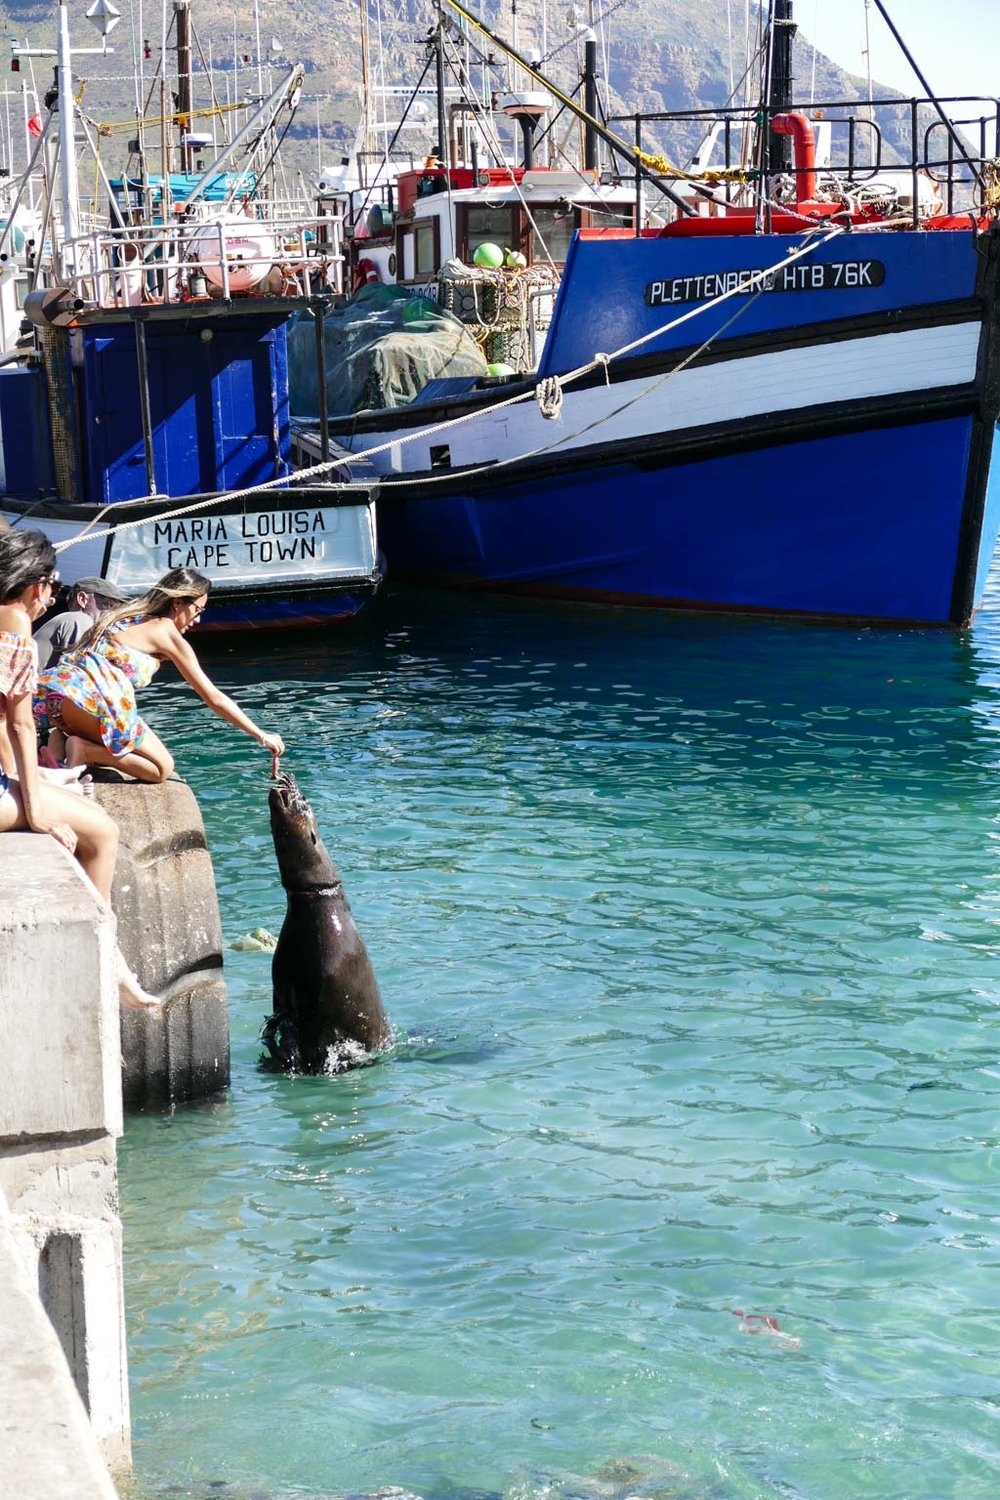 Seal being fed by a tourist